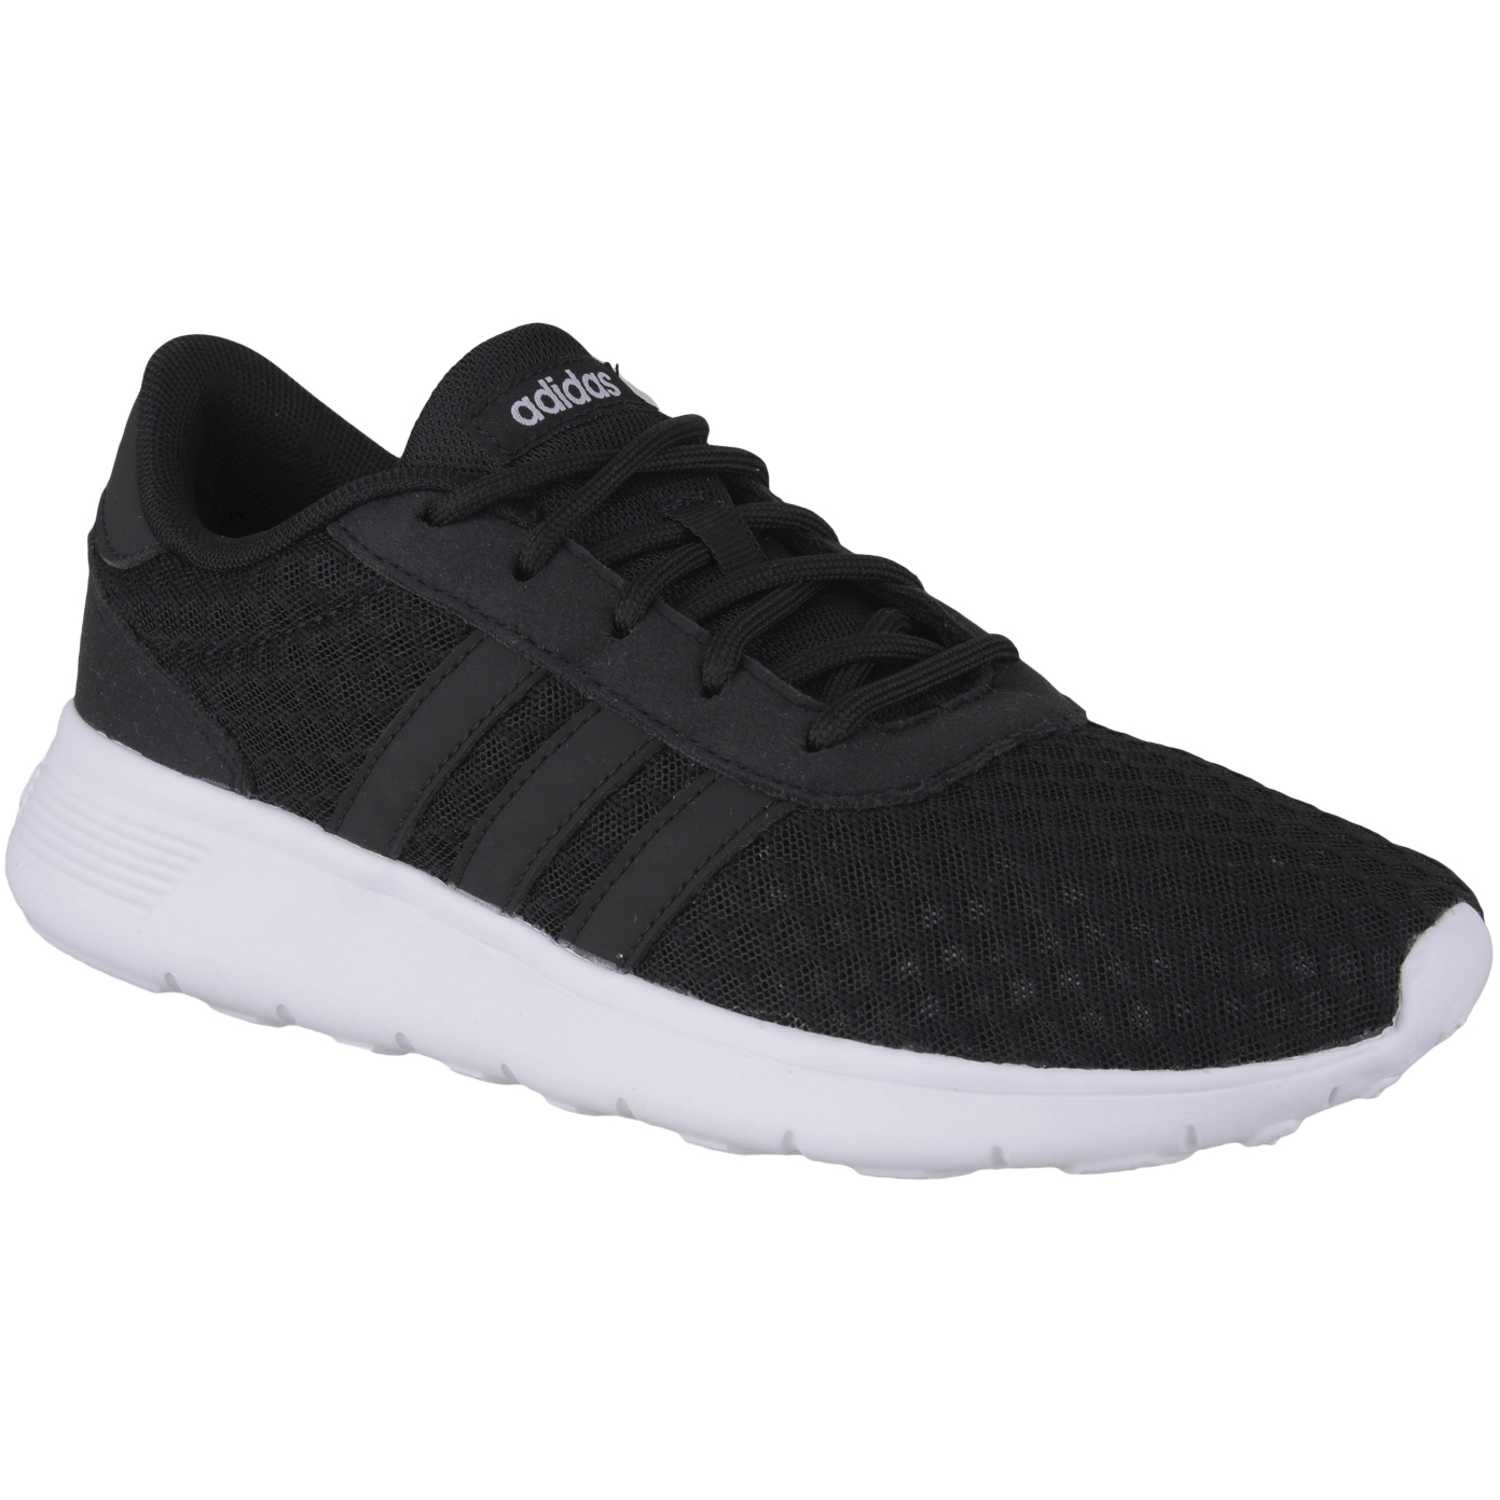 Adidas Neo Lite Racer Mujer Buy Clothes Shoes Online